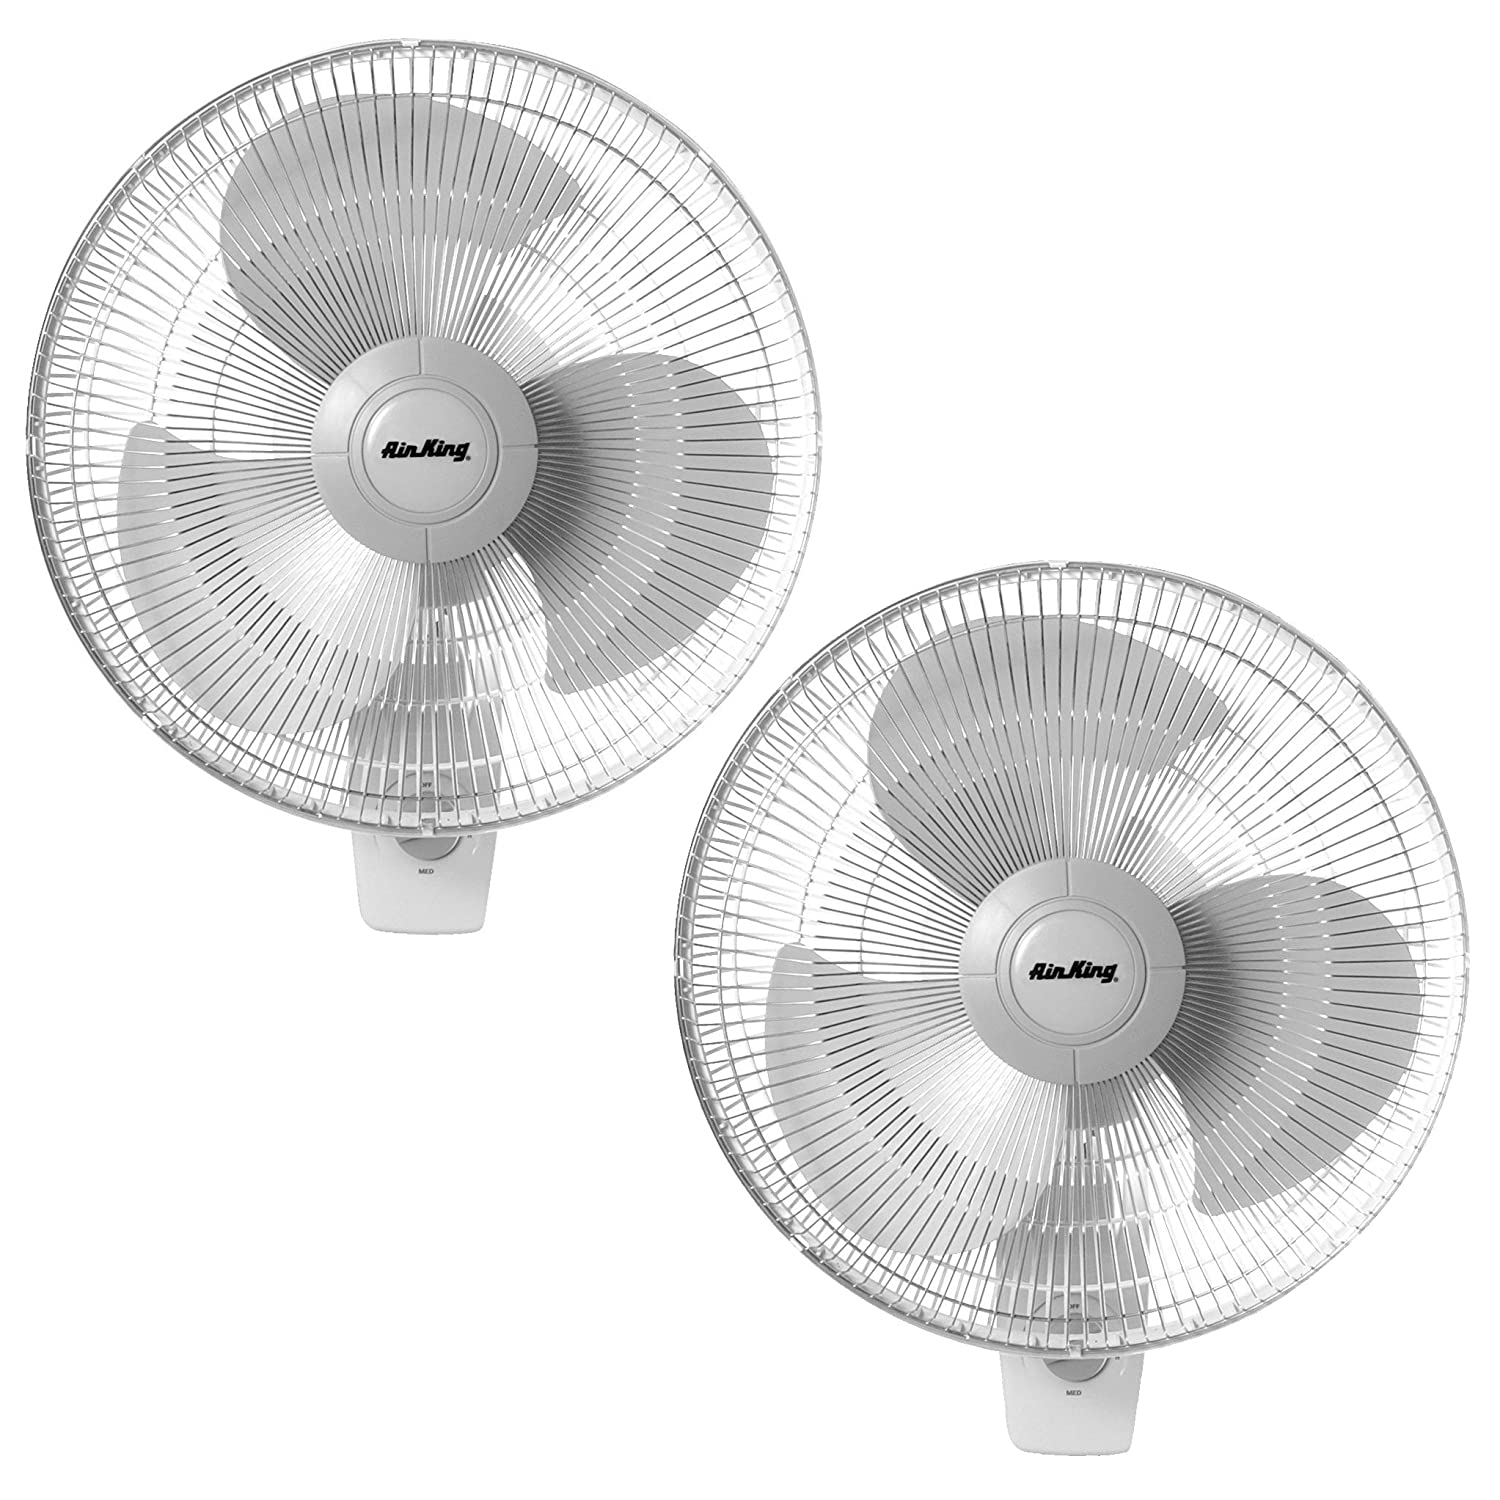 Air King 16 Inch Commercial Grade Oscillating 3 Blade Wall Mount Fan 2 Pack